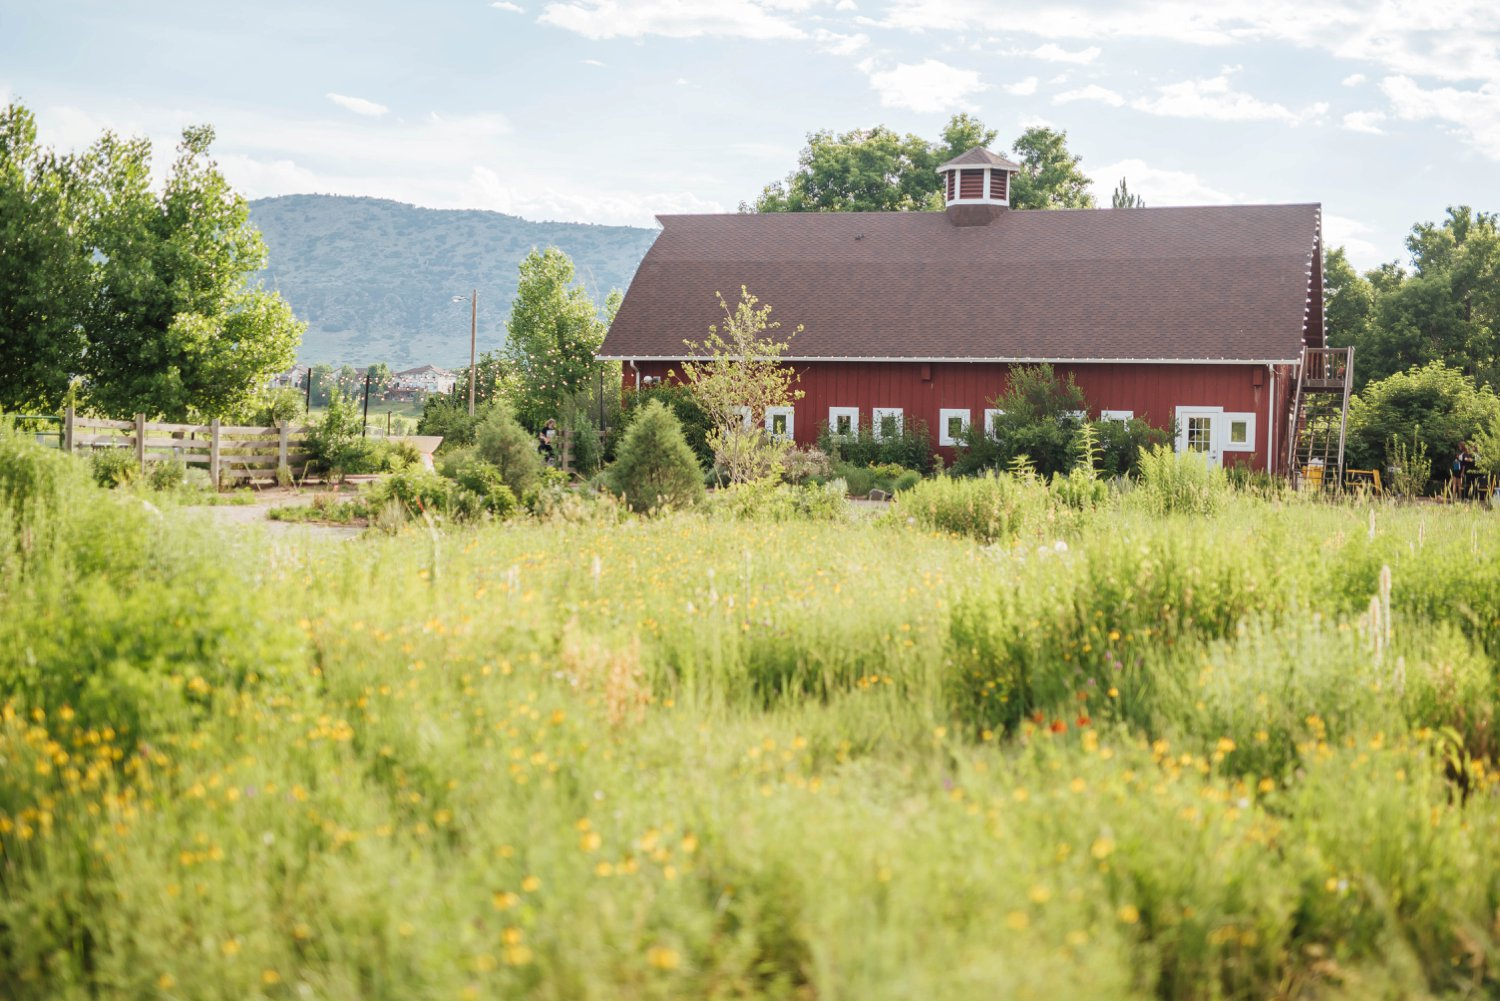 Chatfield farm is famous for its bright red barn that wedding receptions can be held in.Photo by Maddie Mae Photography